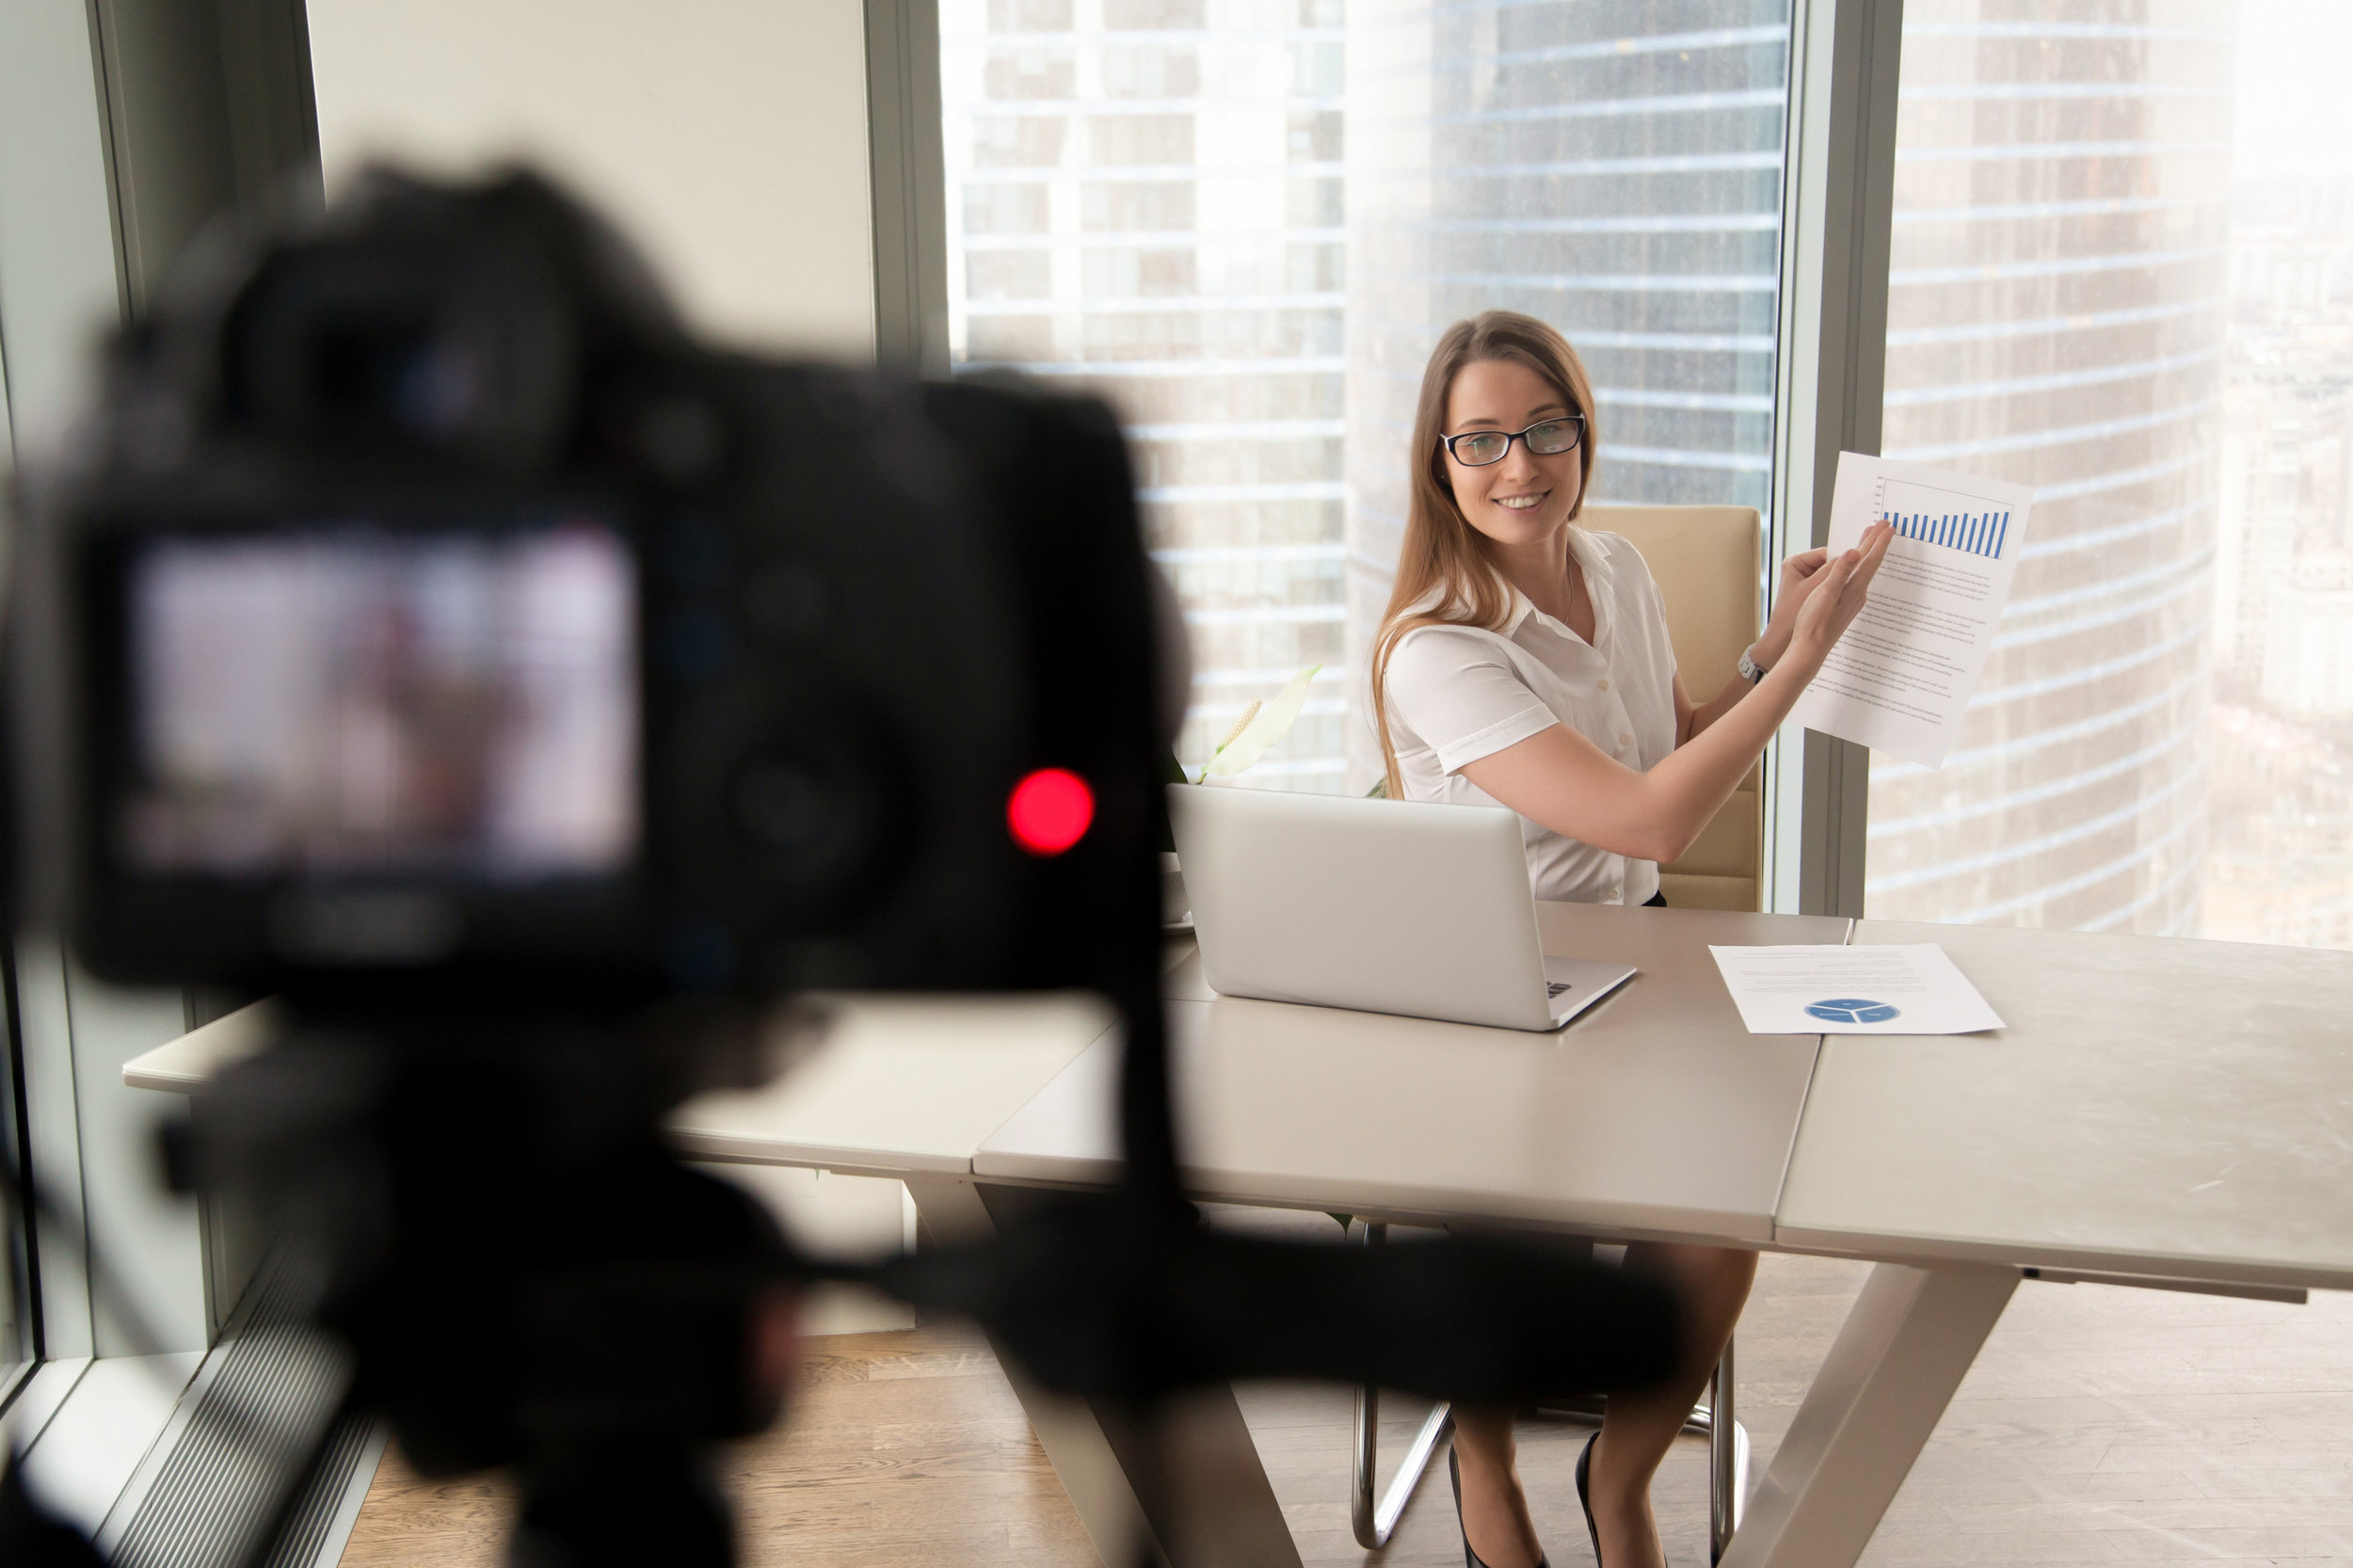 Video blogs can be a great tool to showcase your expertise in a more animated, humanized way than through boring text and newsletters